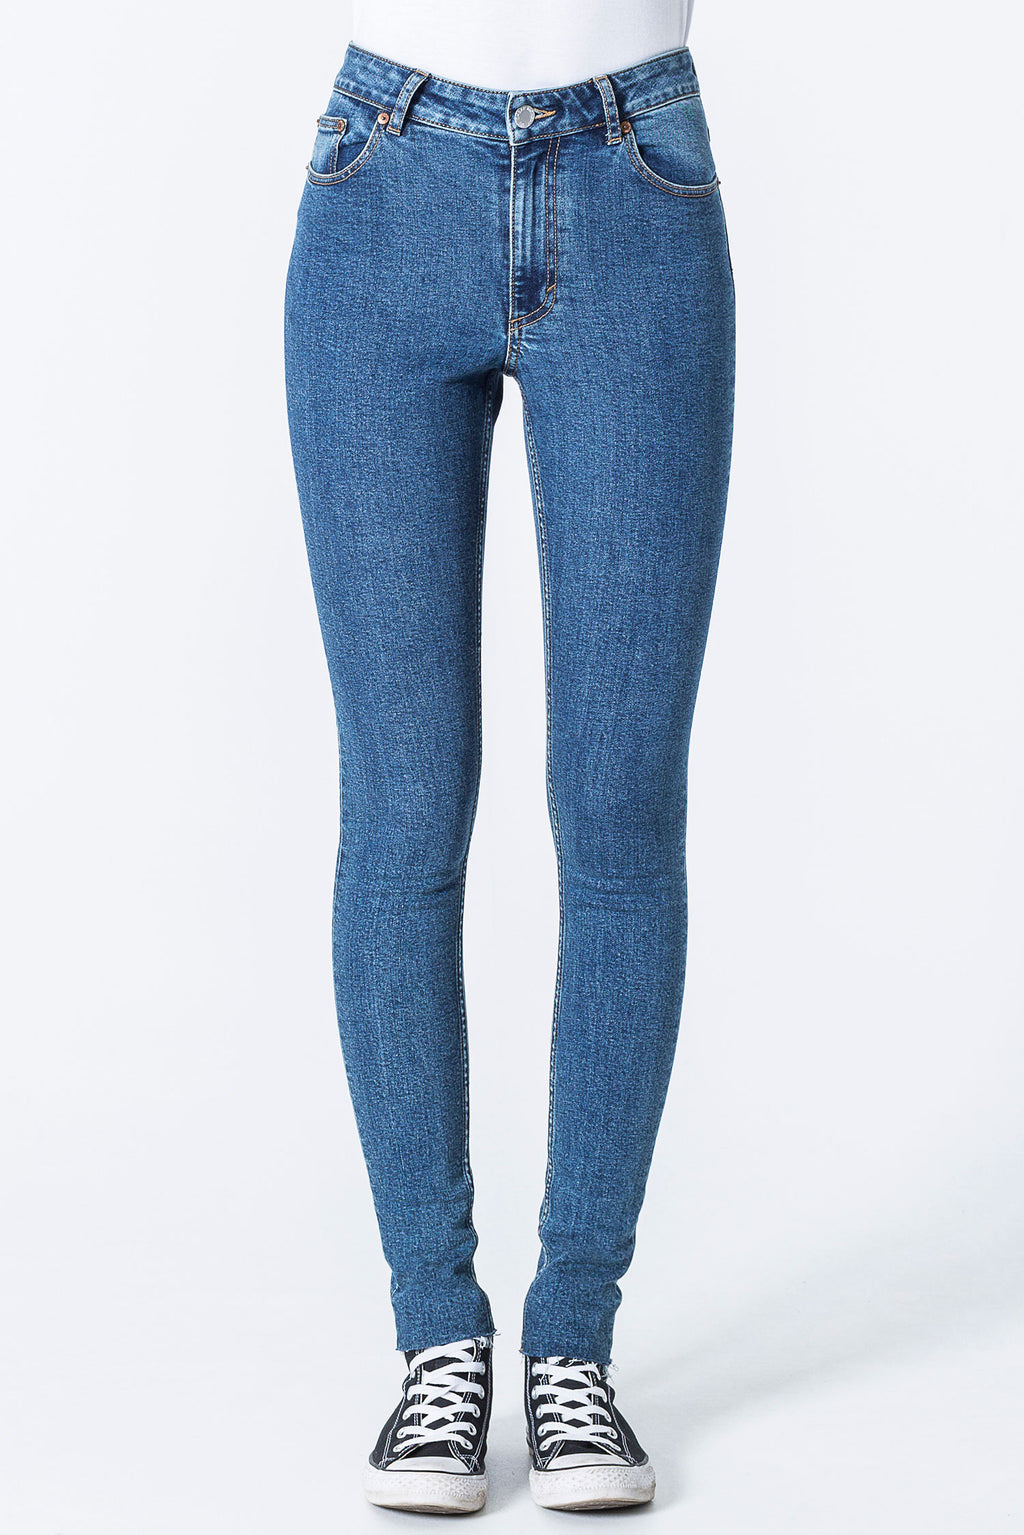 Cheap Monday - High Skin - Blue Love - Gals